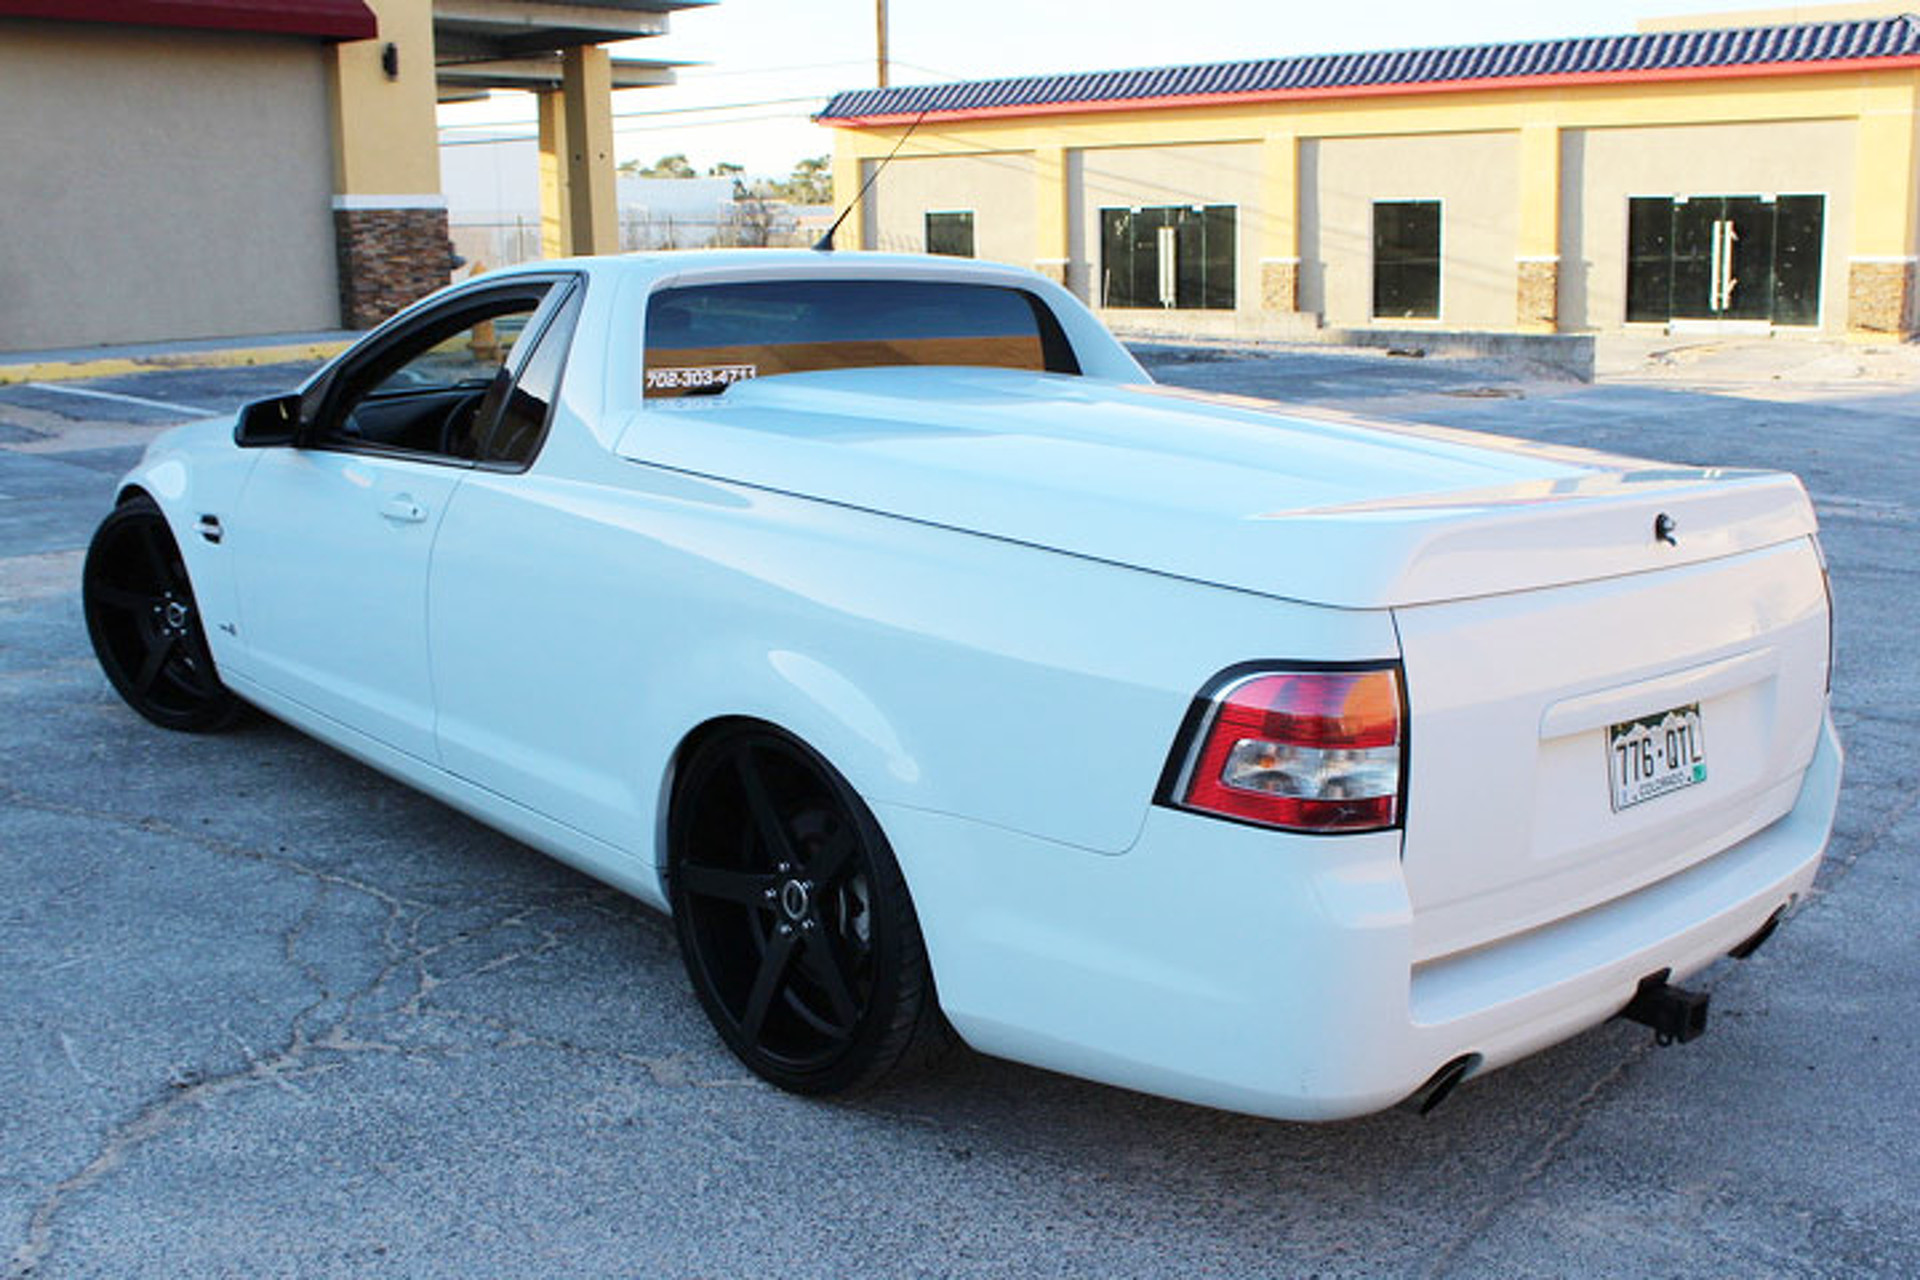 Forbidden Fruit: This Holden Ute Lives in the USA